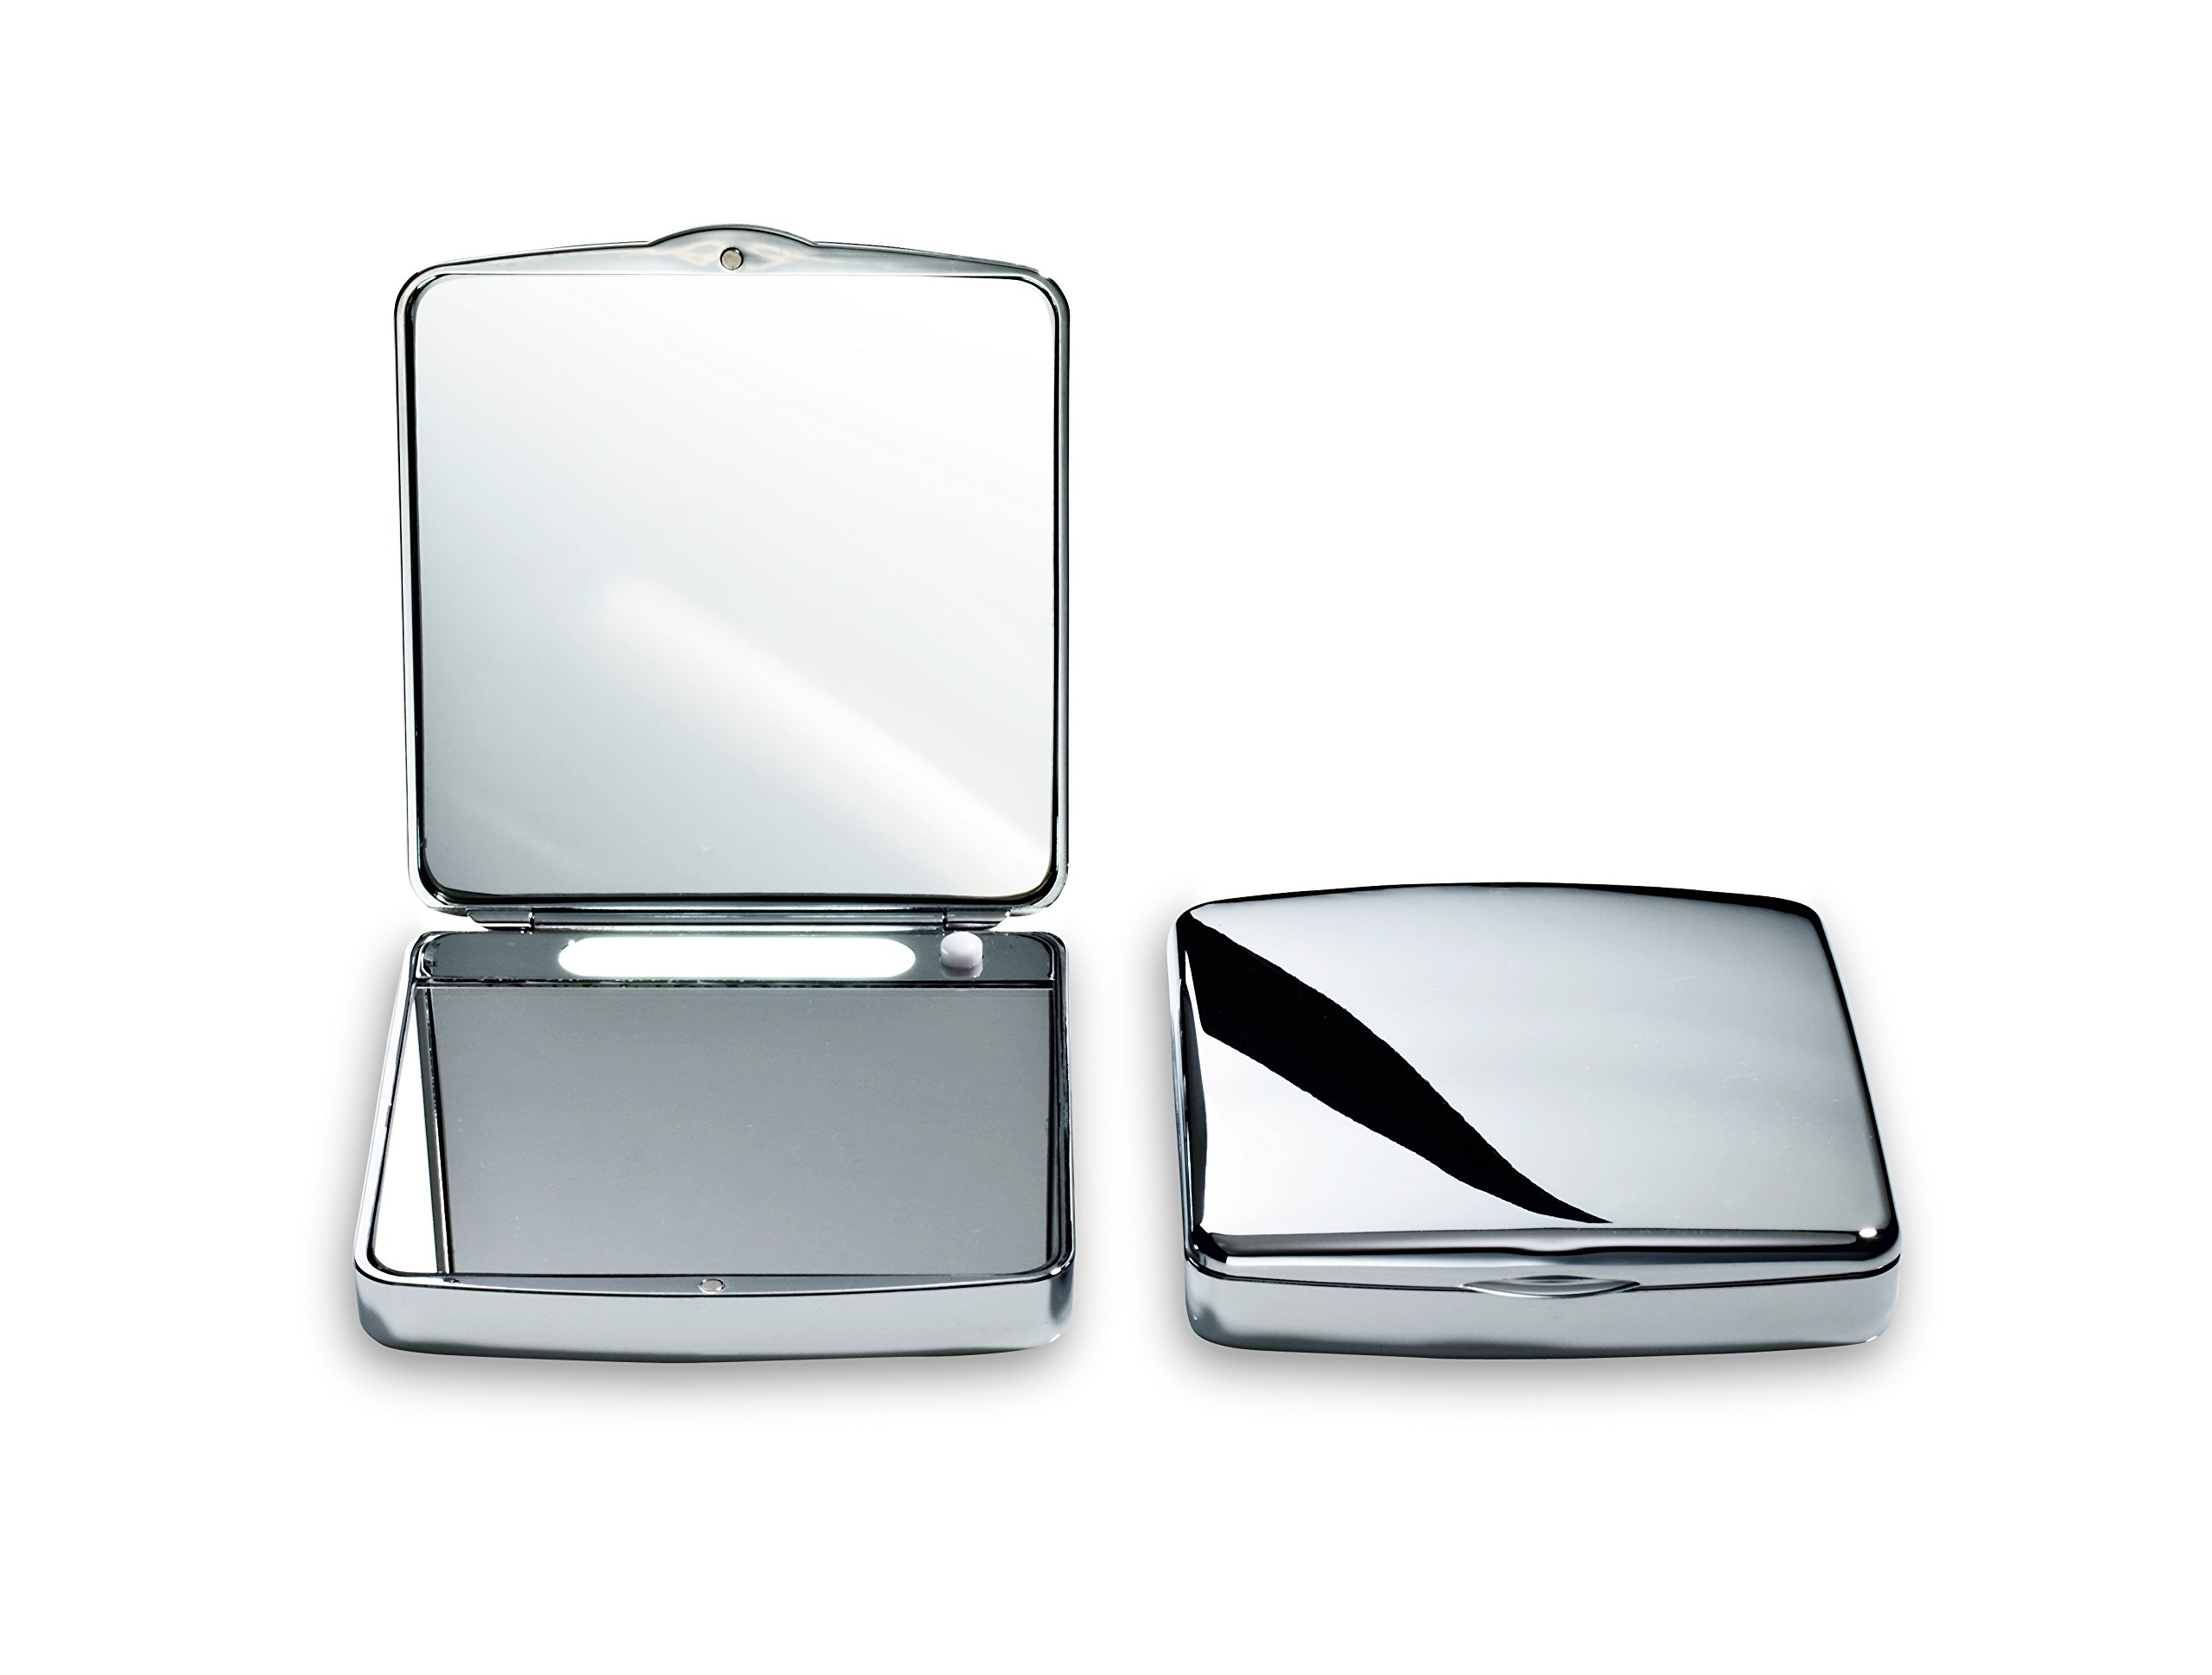 DWBA Hand Cosmetic Makeup Pocket Magnifying Mirror 7x with LED Light. Lighted Makeup Mirror. Compact Mirror. Polished Chrome